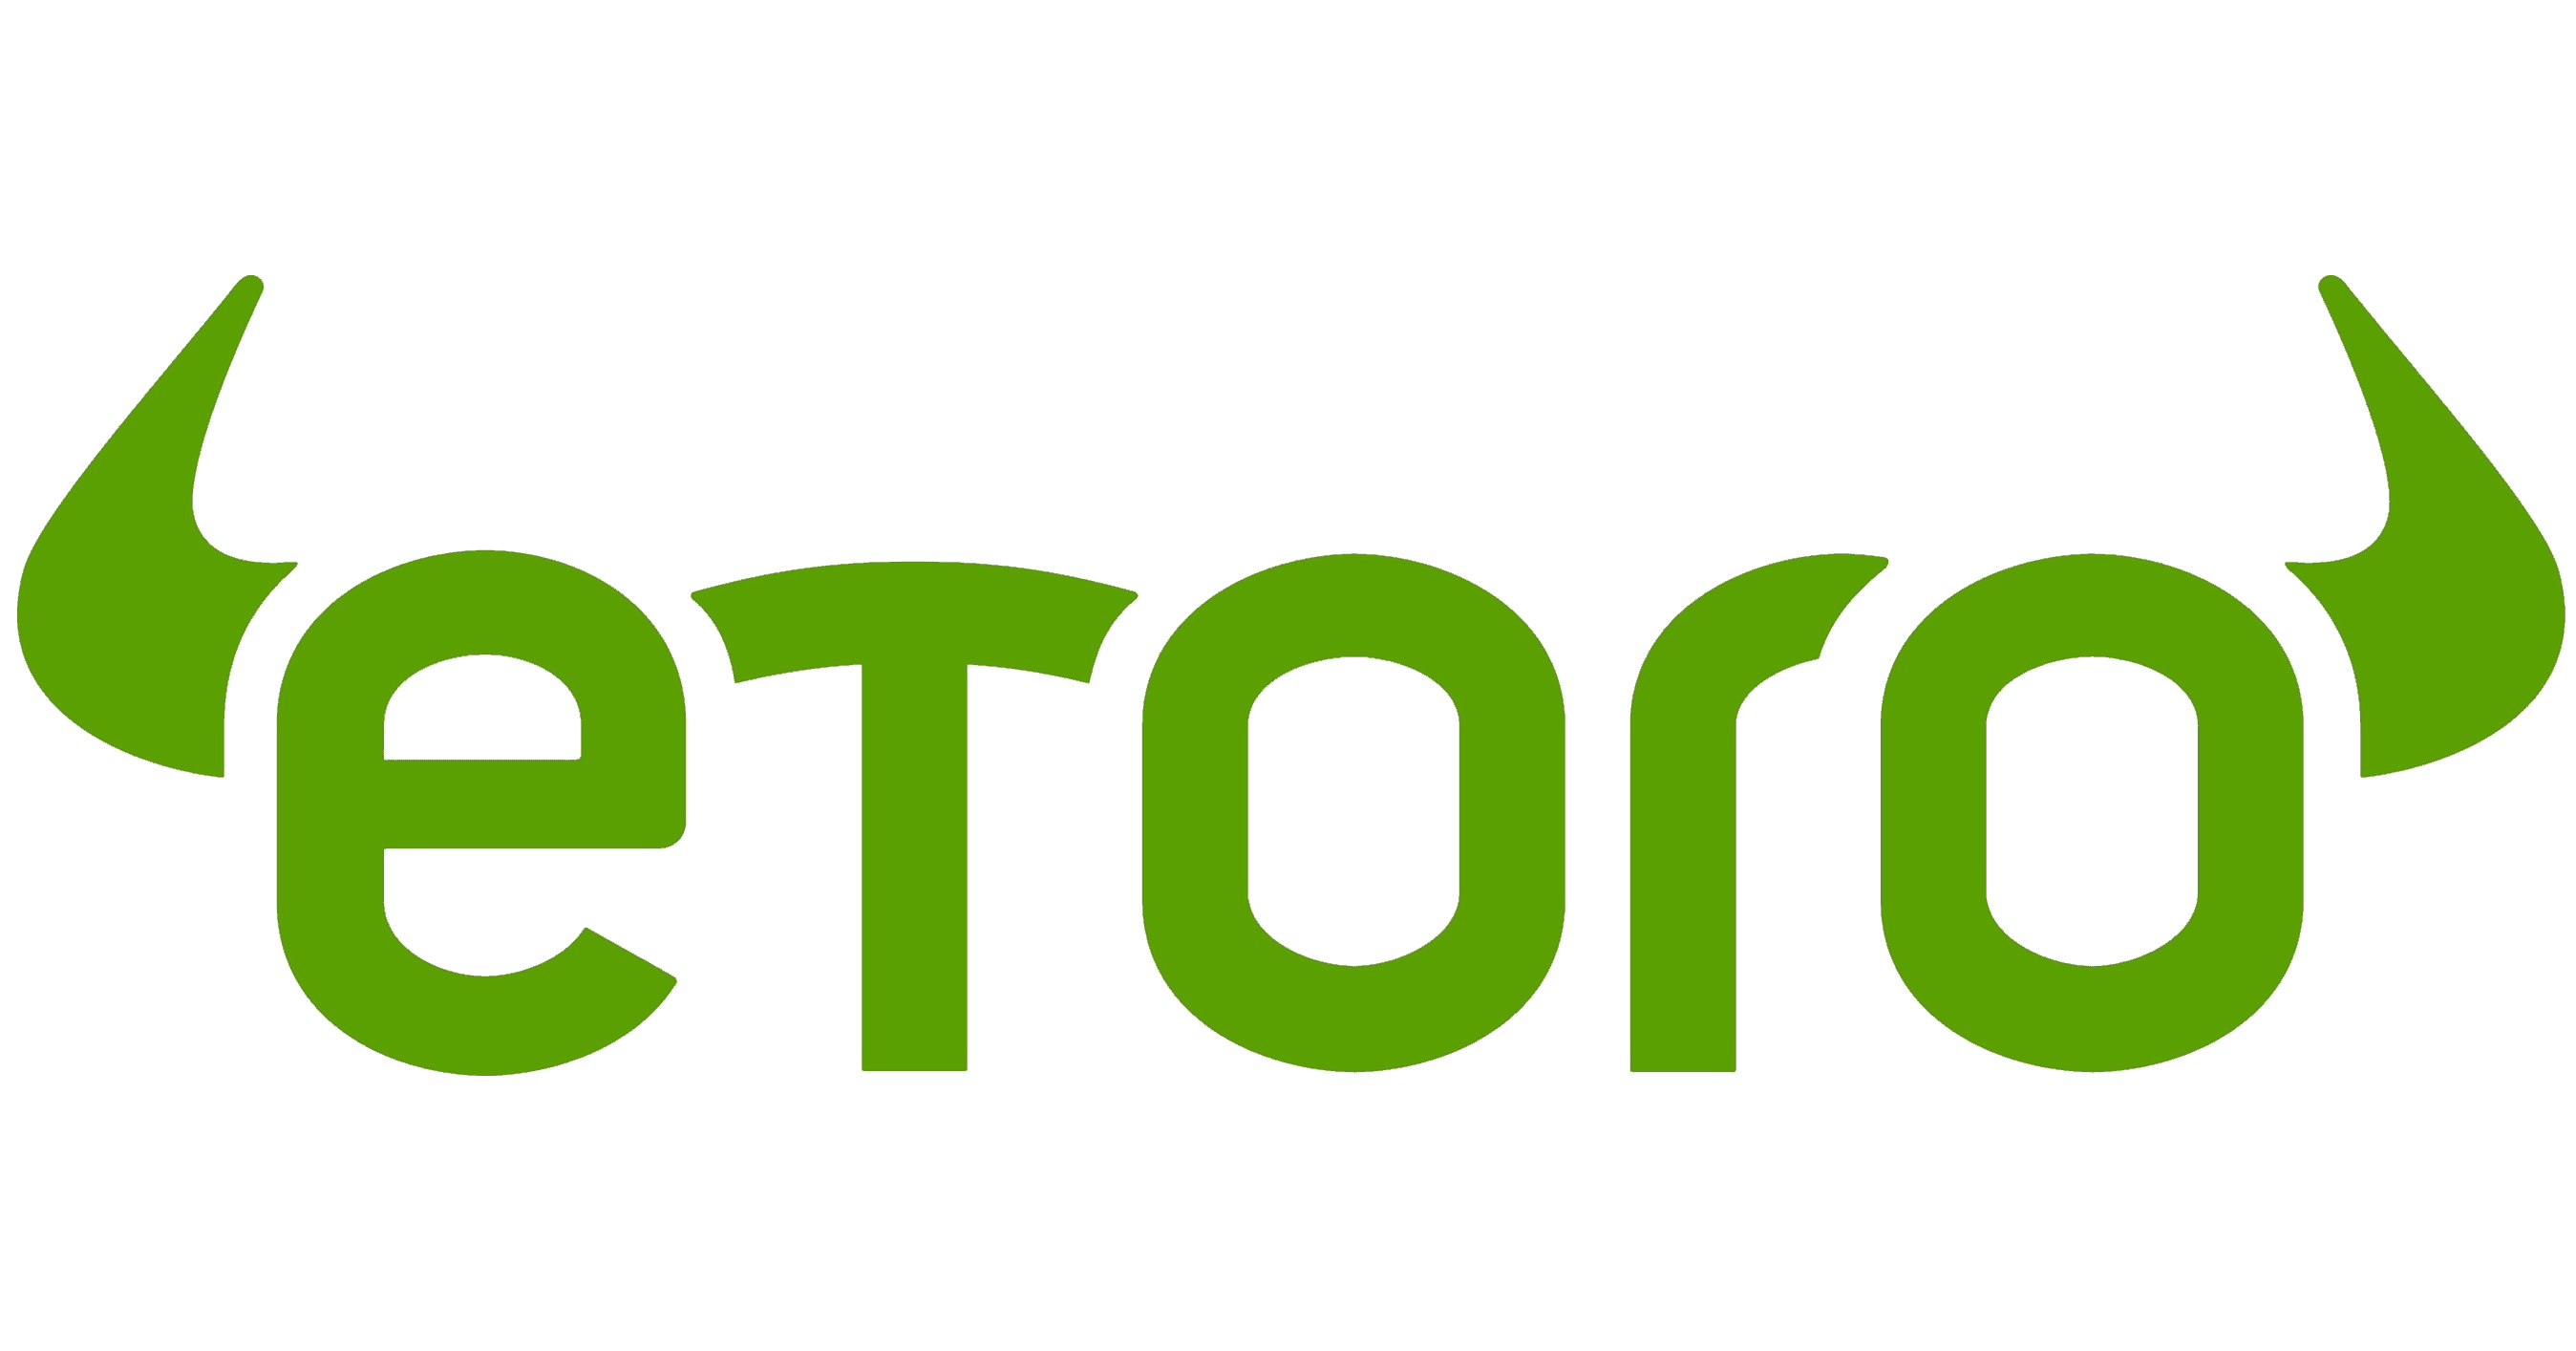 eToro Review 2019 - Fees, Platform, Bonus, Pros & Cons